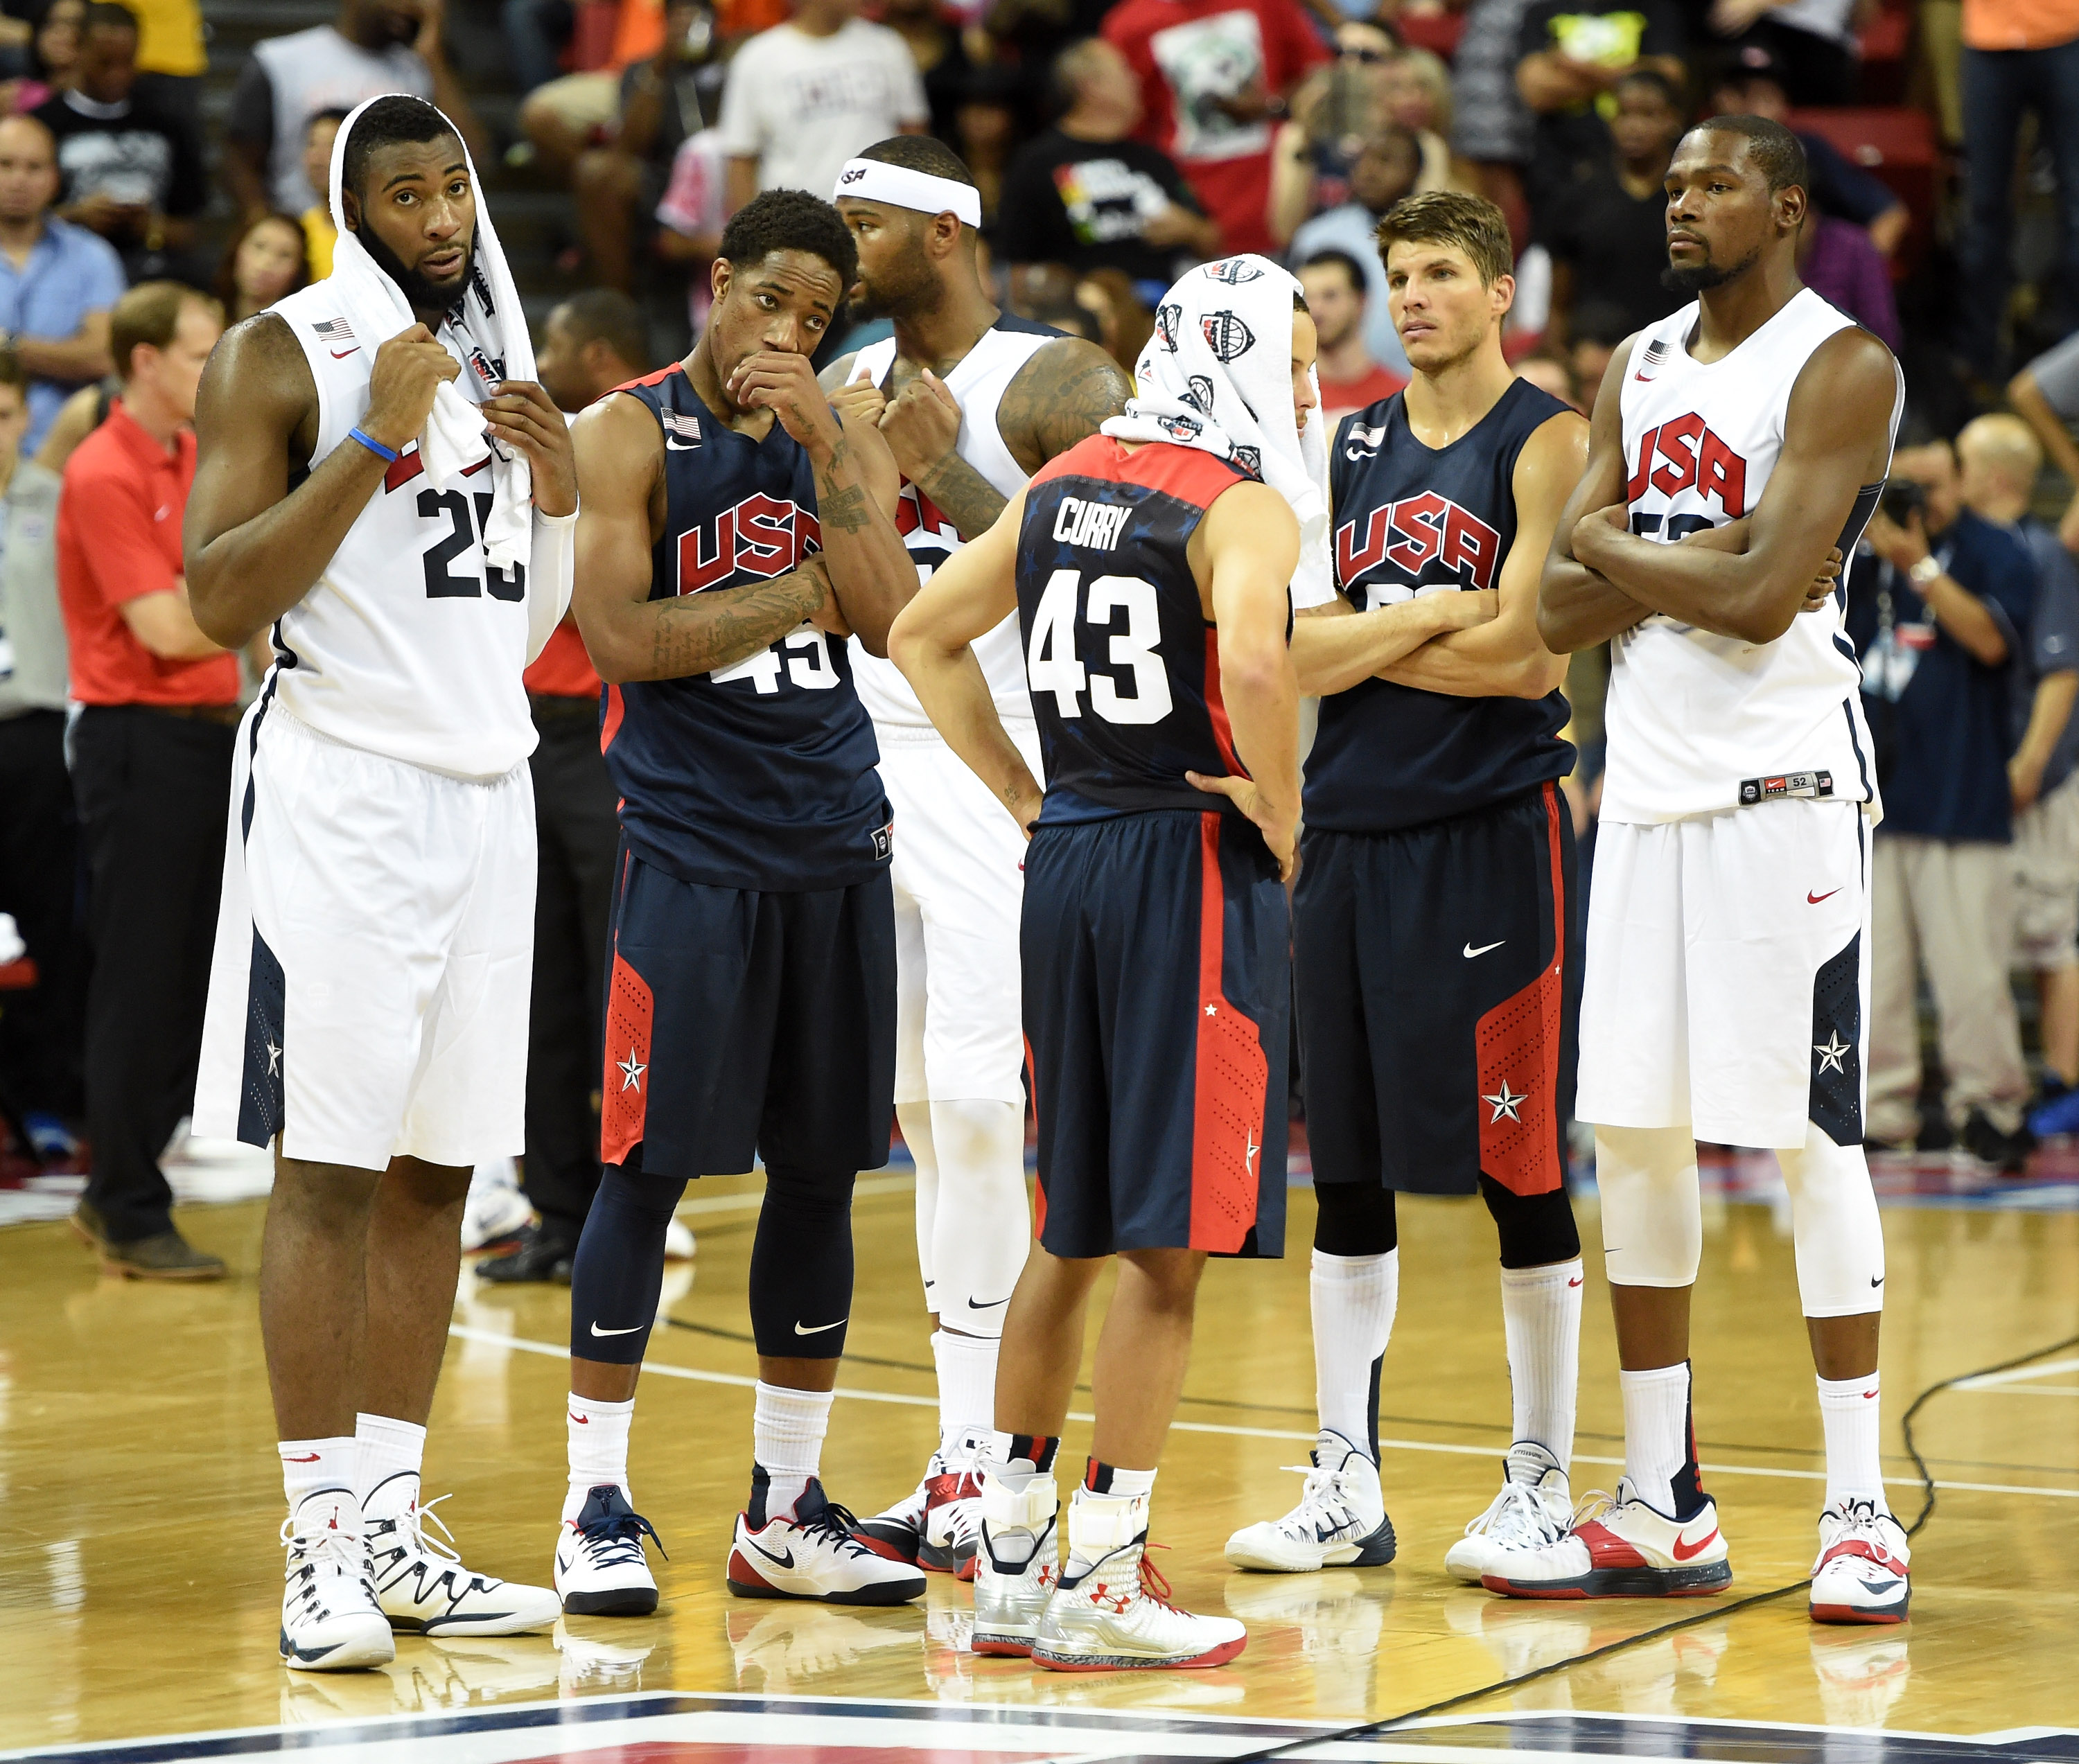 Ebola USA Basketball Senegal